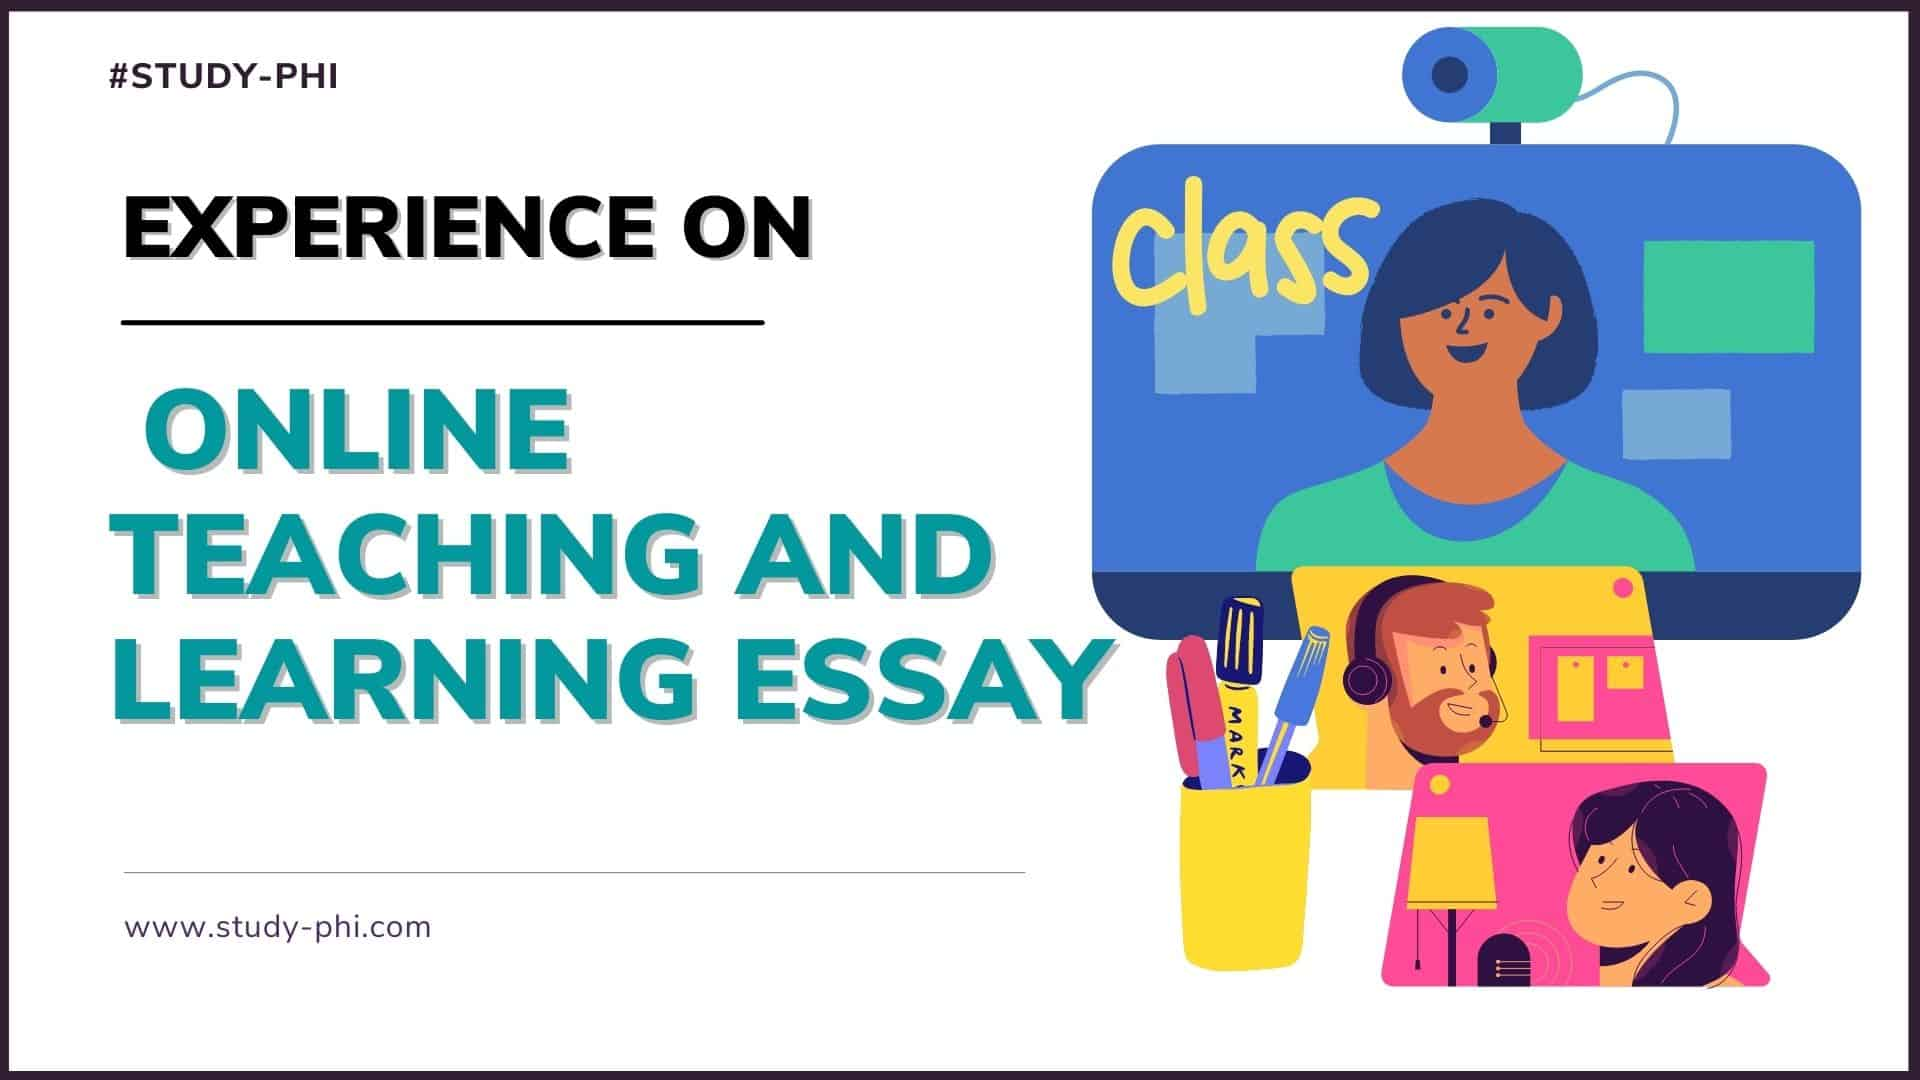 Experience on Online Teaching and Learning Essay